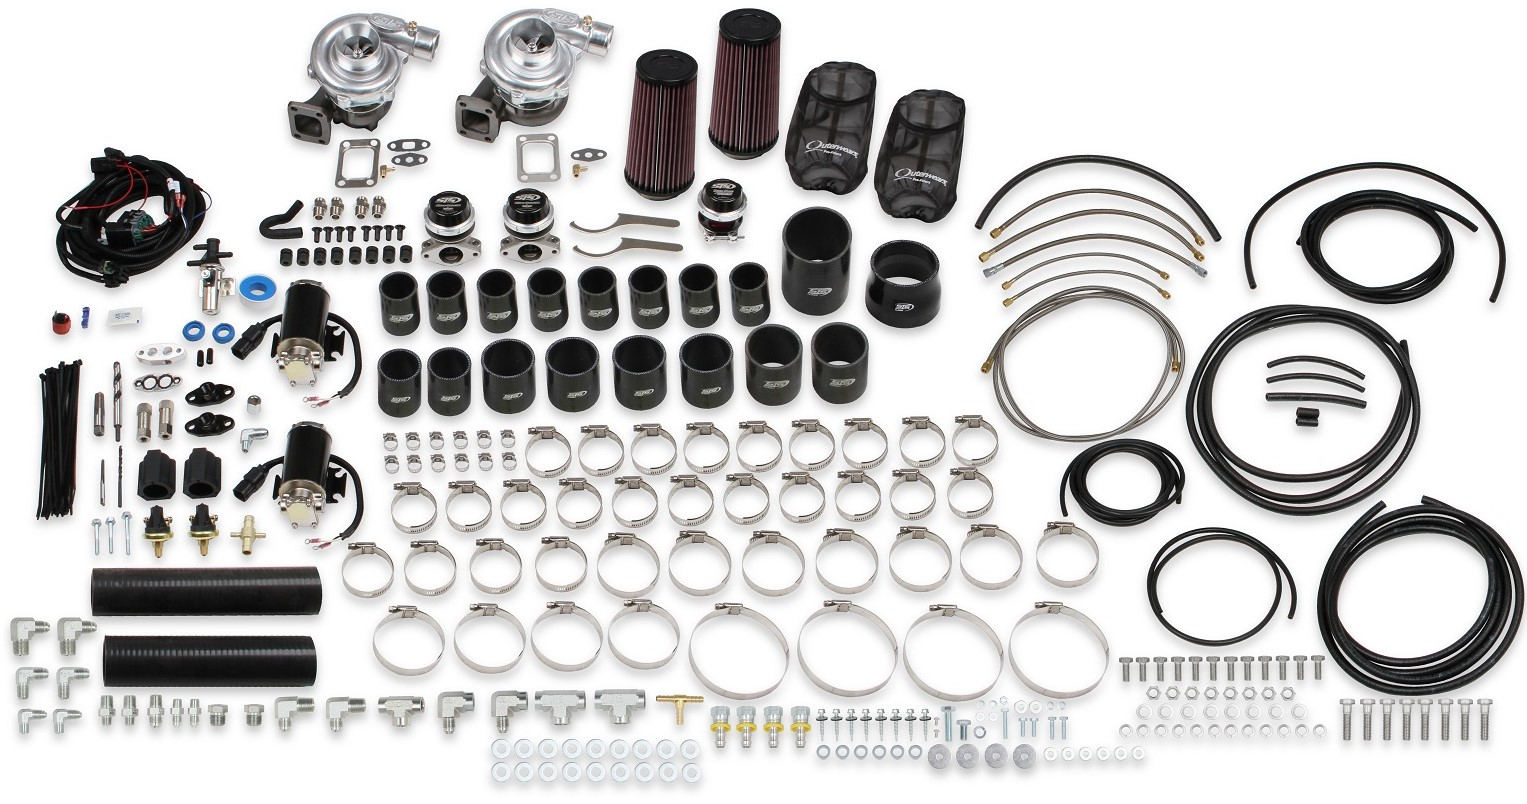 C6 Corvette Grand Sport STS Turbo Tuner Kit from Holley 2010-2013 Rear Mounted Twin Turbo System